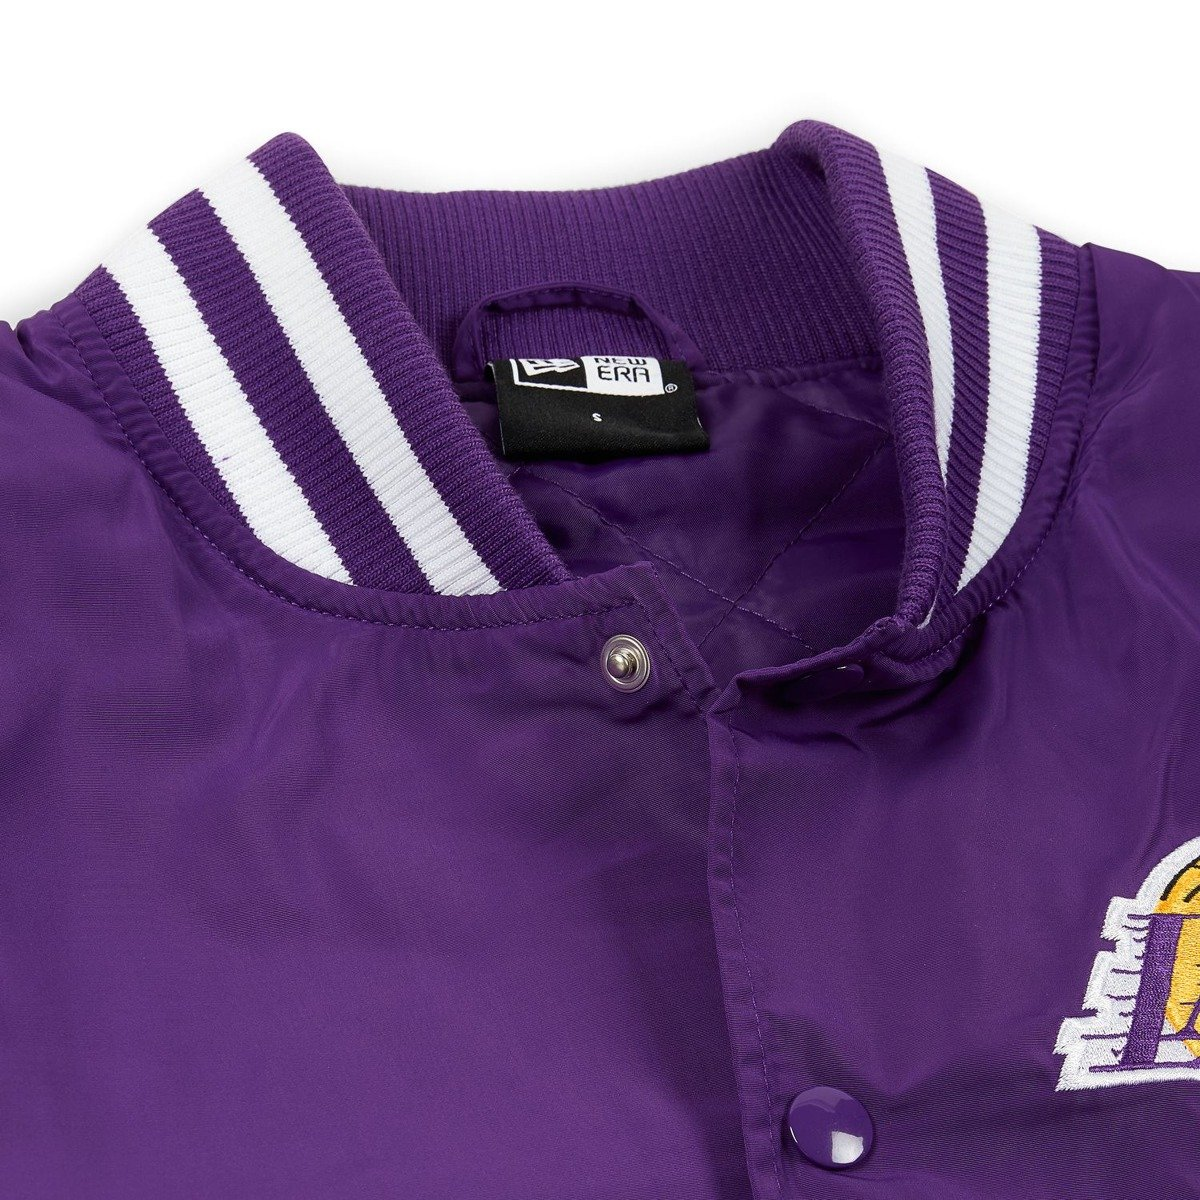 ... Los Angeles Lakers Giacca NEW ERA 11788928 Clicca per espandere ... 1b51df3f2d45